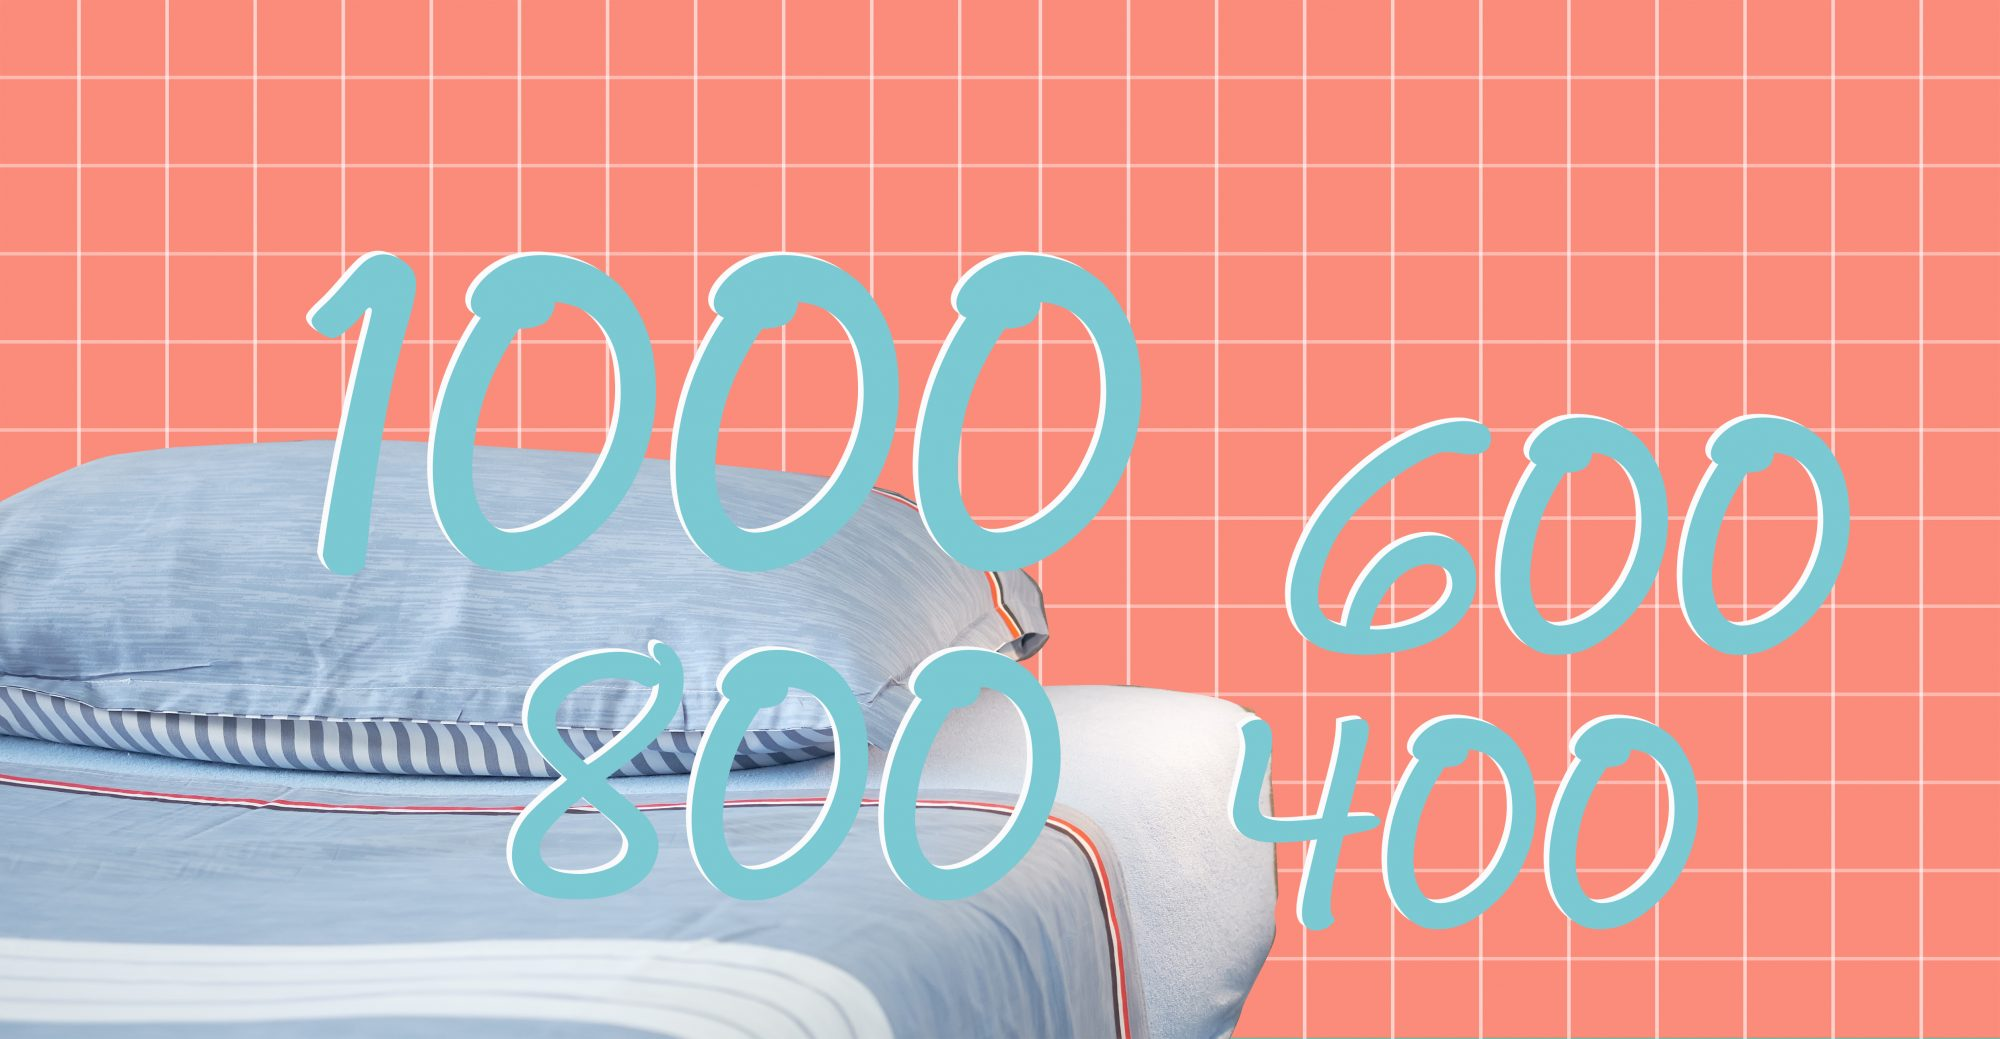 Beyond Thread Count What To Look For When Ing Sheets Realsimple